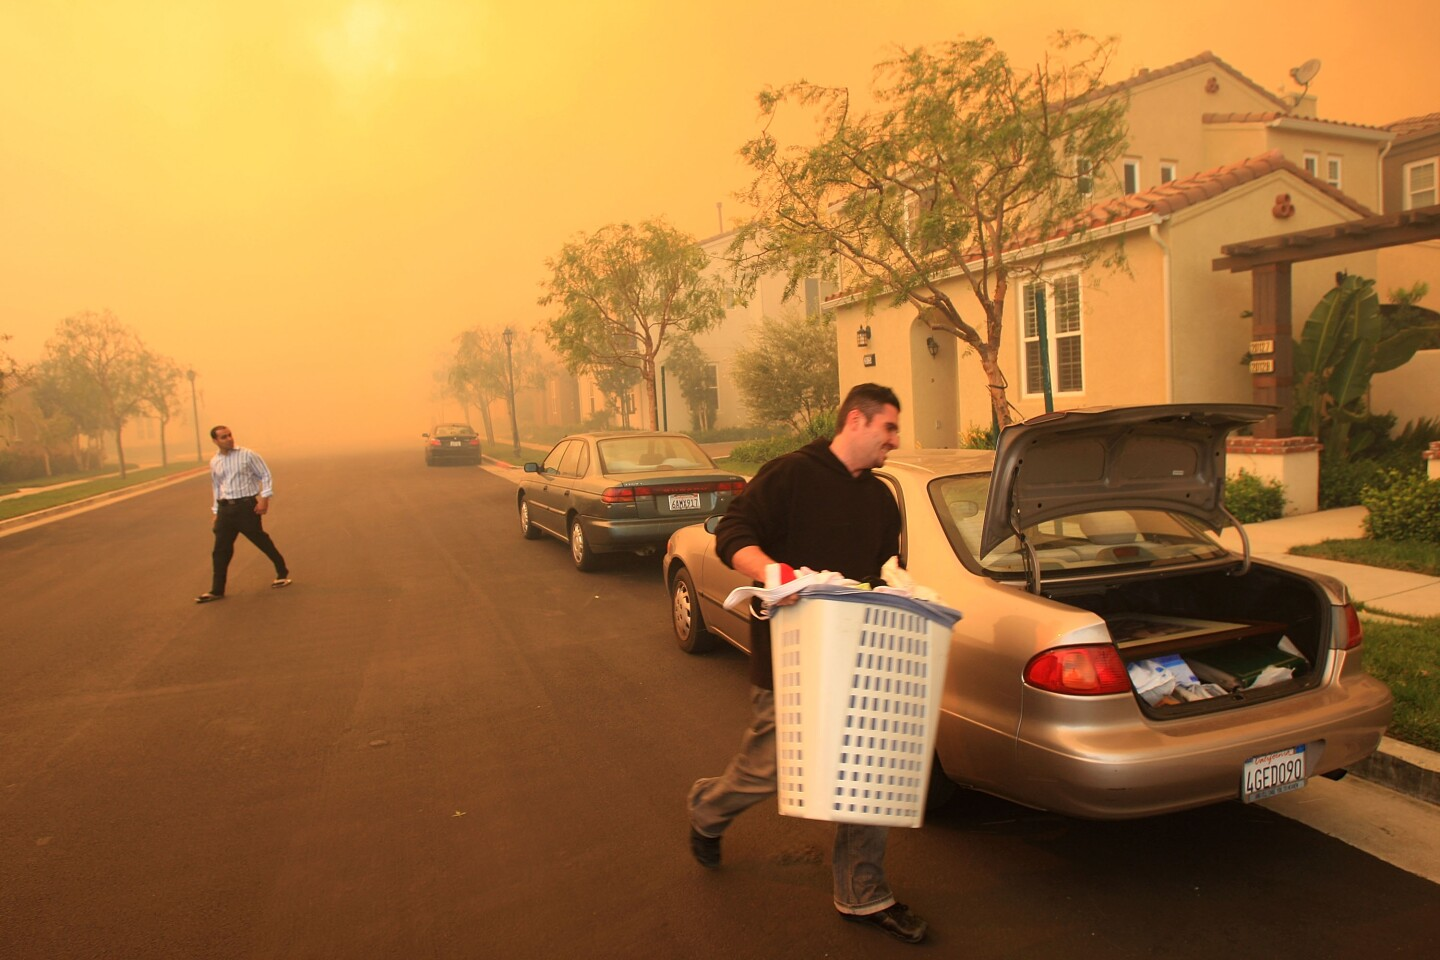 A man carries a white plastic hamper to the trunk of his car on a street where a deep orange smoke is everywhere.